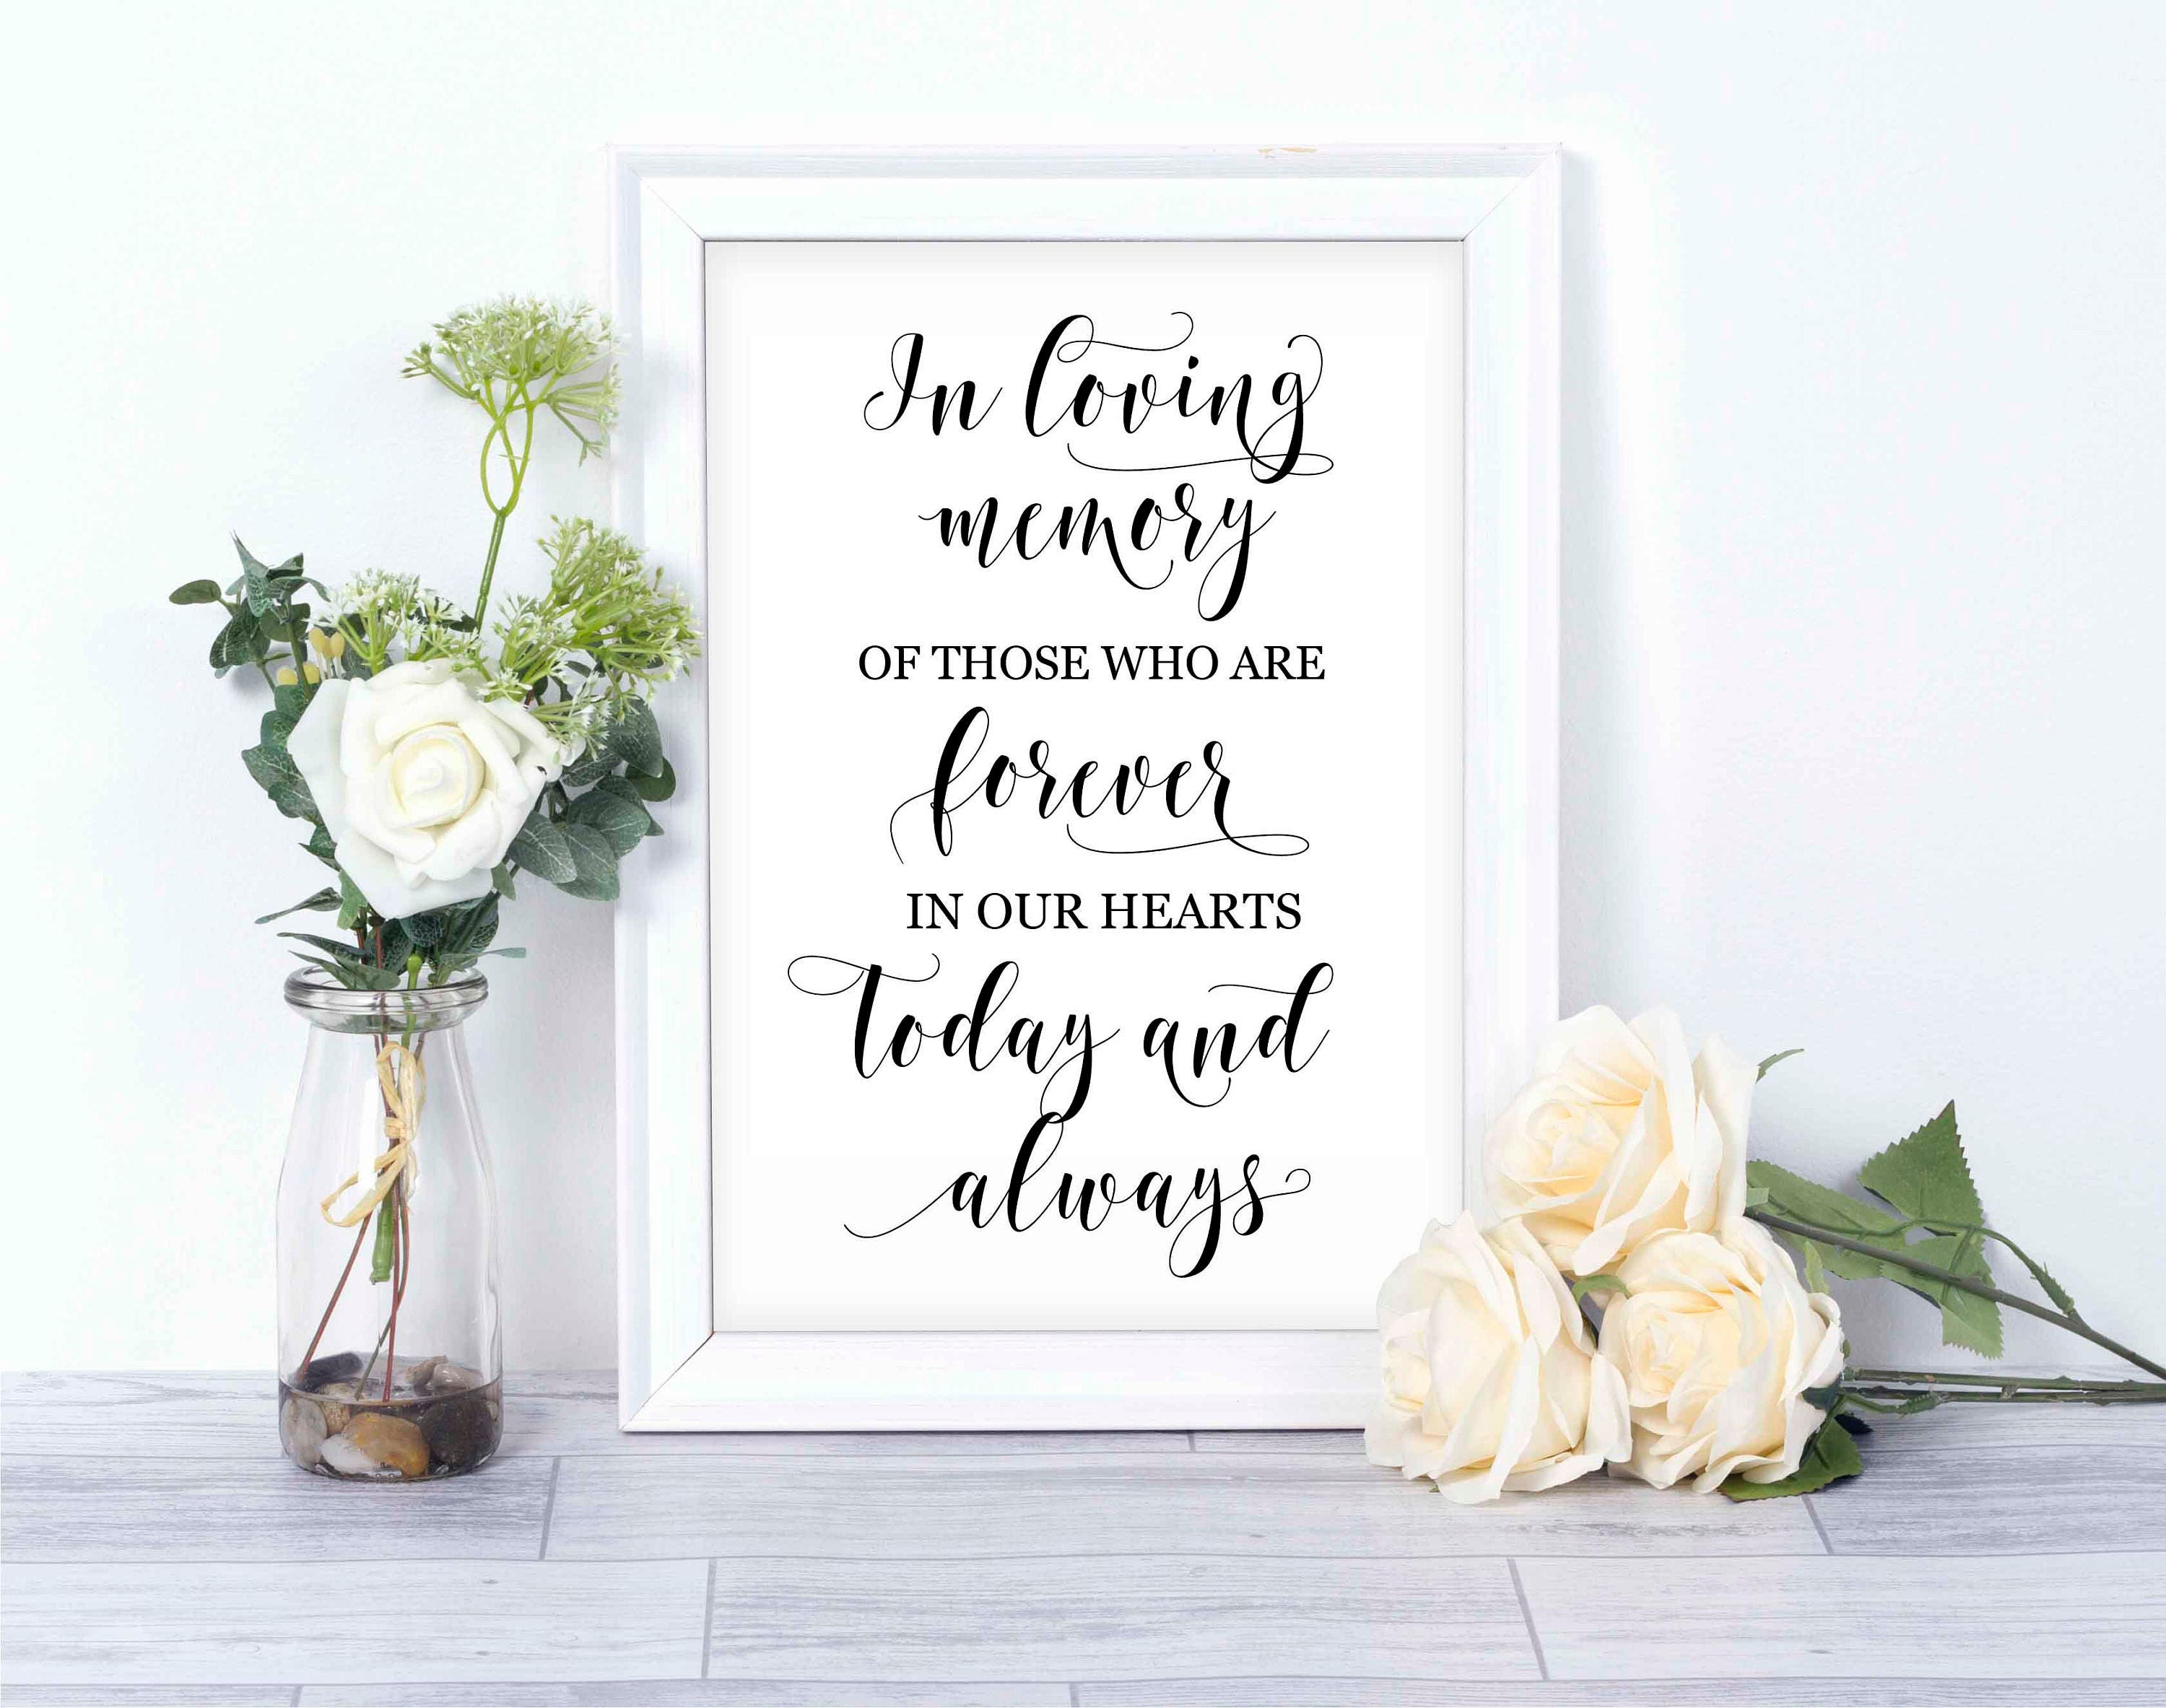 in loving memory wedding sign/ instant download printable/ wedding, Powerpoint templates